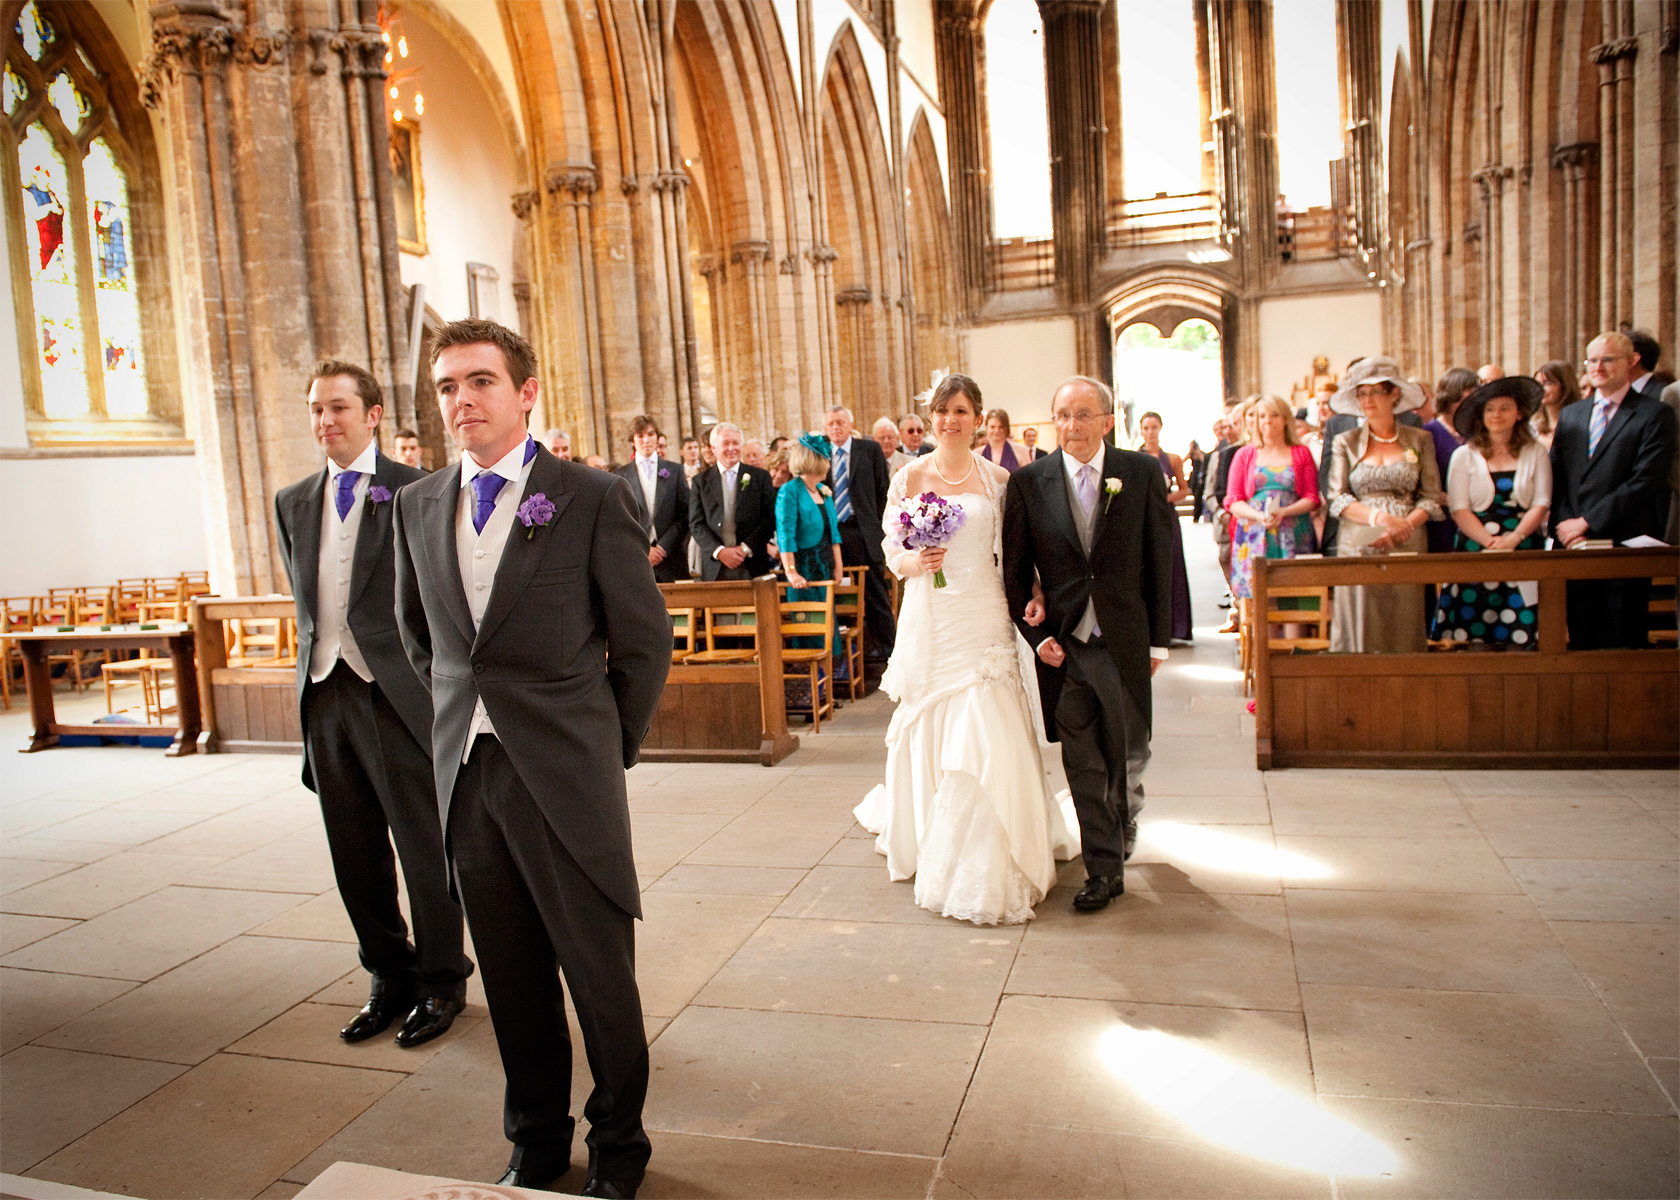 Entrance-of-Bride-at-Llandaff-Cathedral-wedding-photography-in-south-wales.